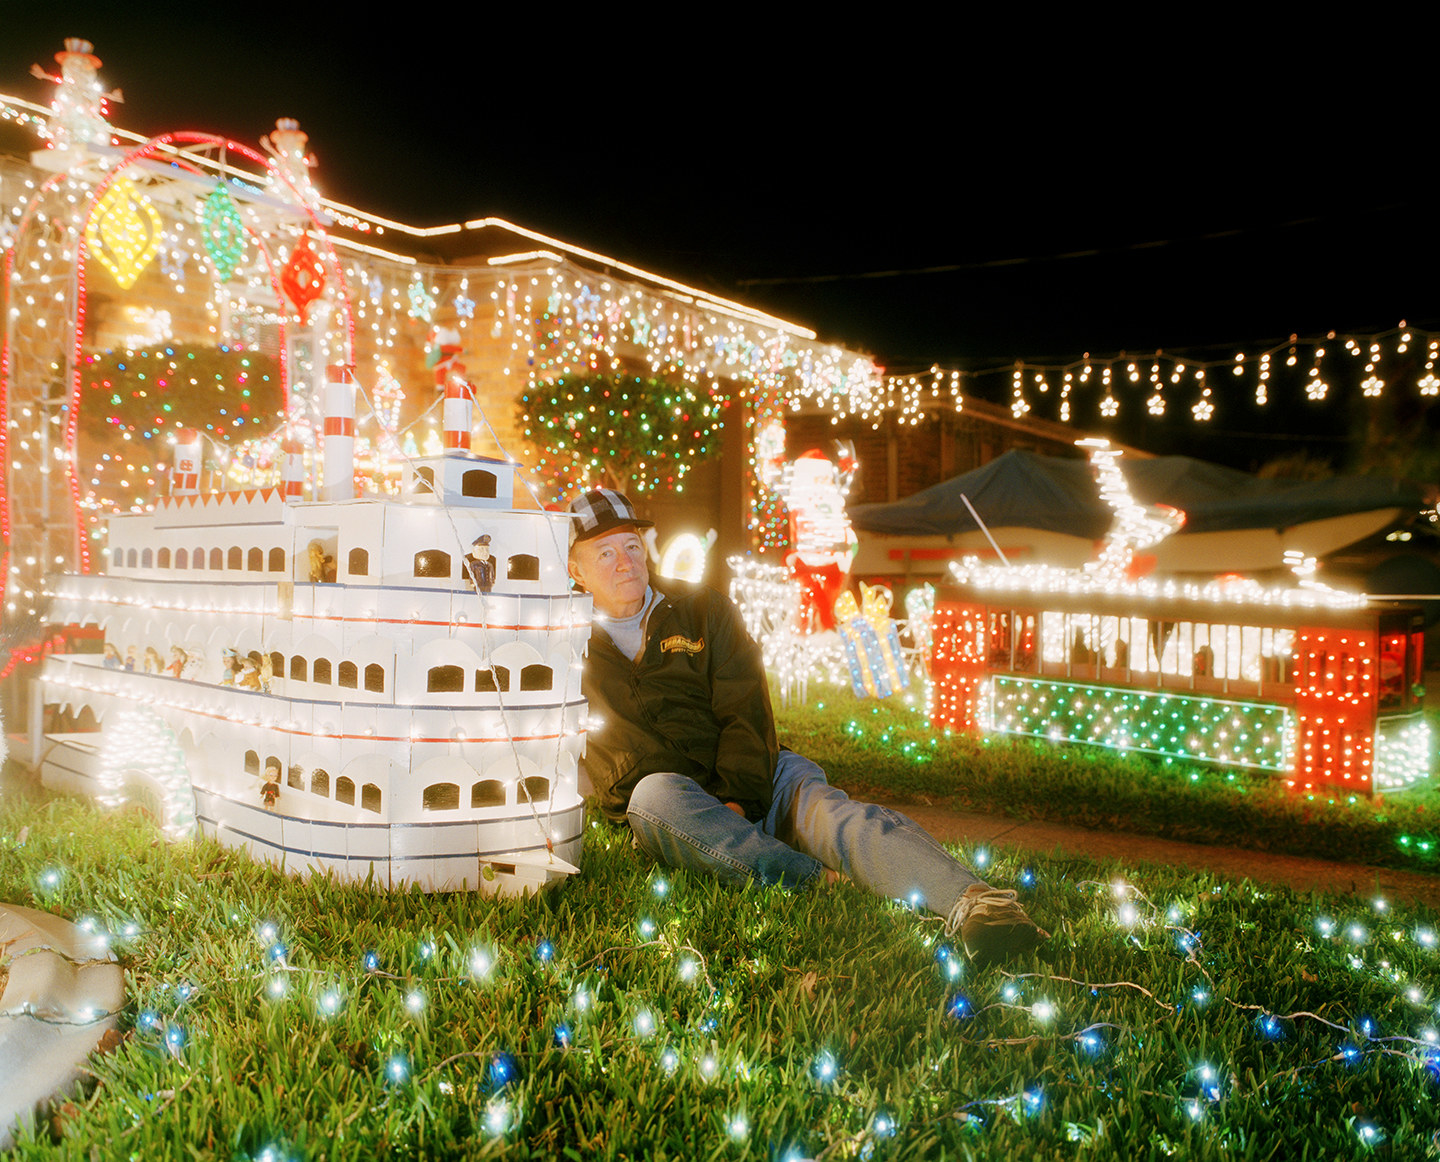 A man and a few models of riverboats, on the lawn of a house covered in Christmas lights